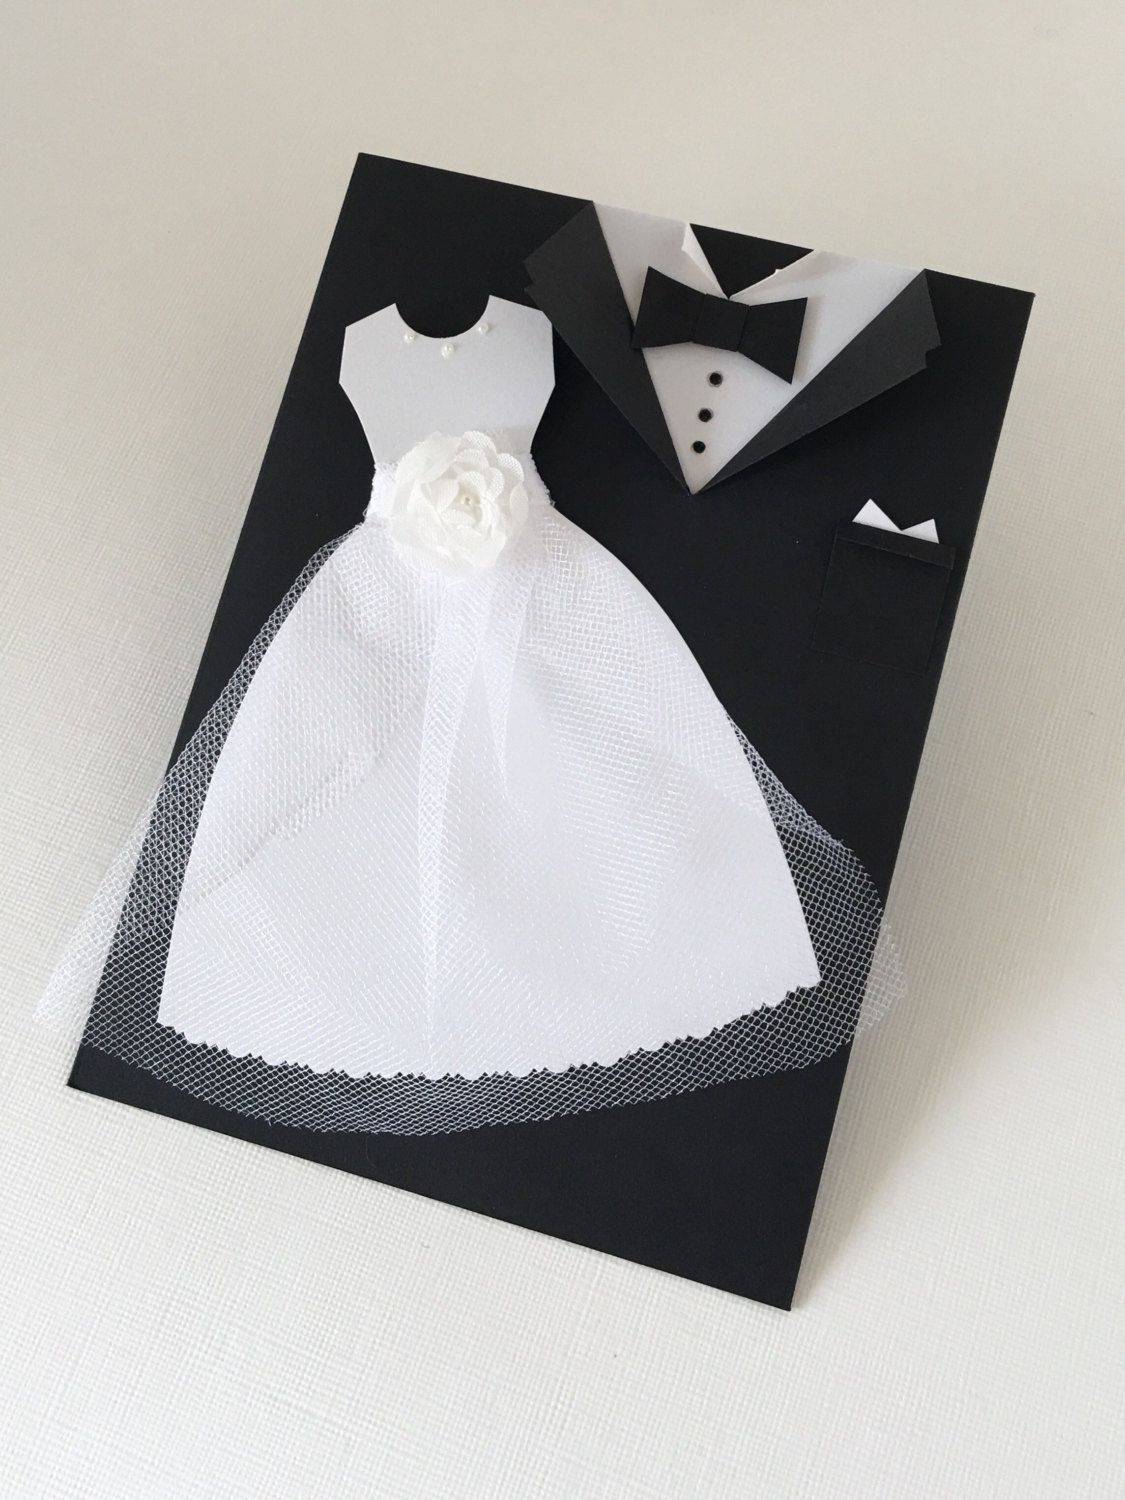 Wedding Card, Mr and Mrs, Bride and Groom Congratulations Card, Tuxedo - Wedding Gown Card, to my daughter on her wedding day